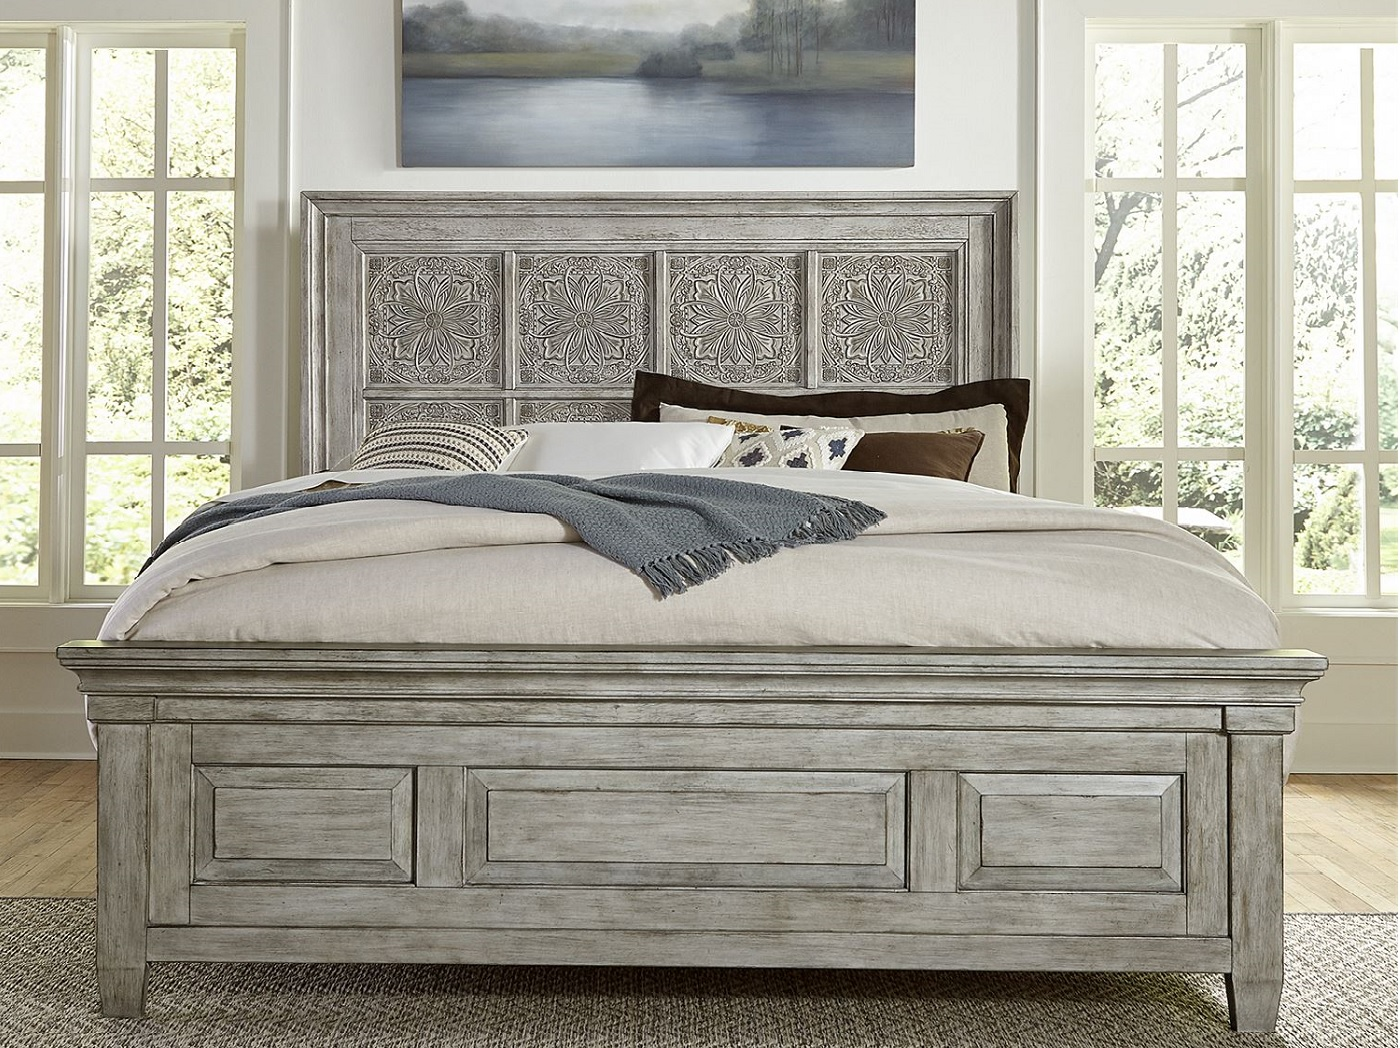 Camellia King Decorative Panel Bed